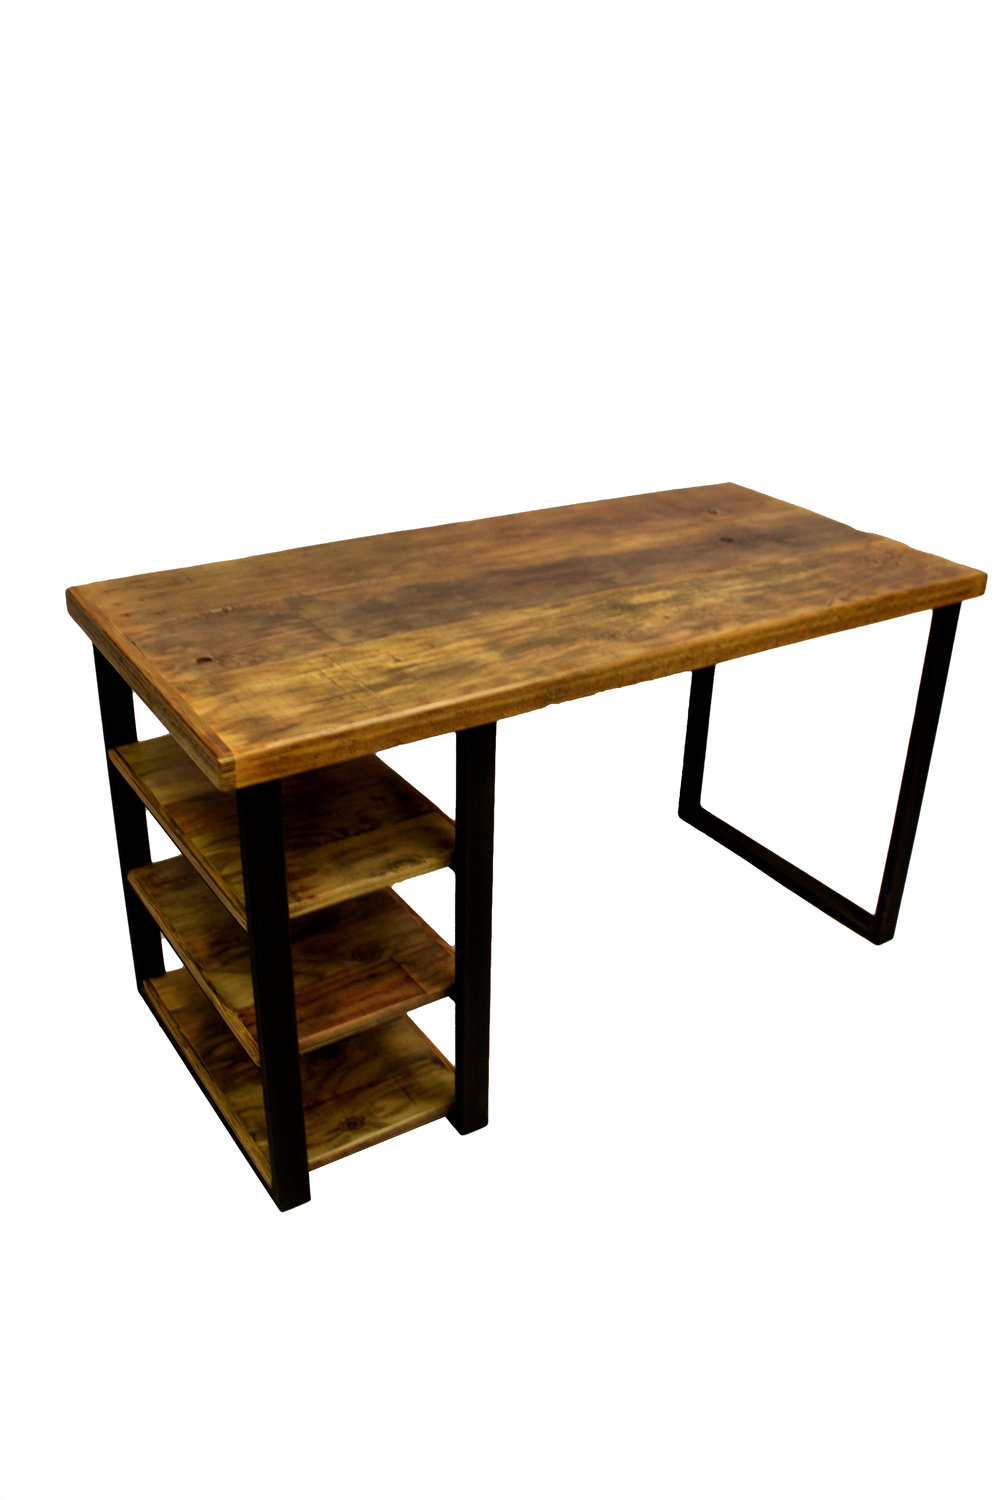 Scaffold board desk